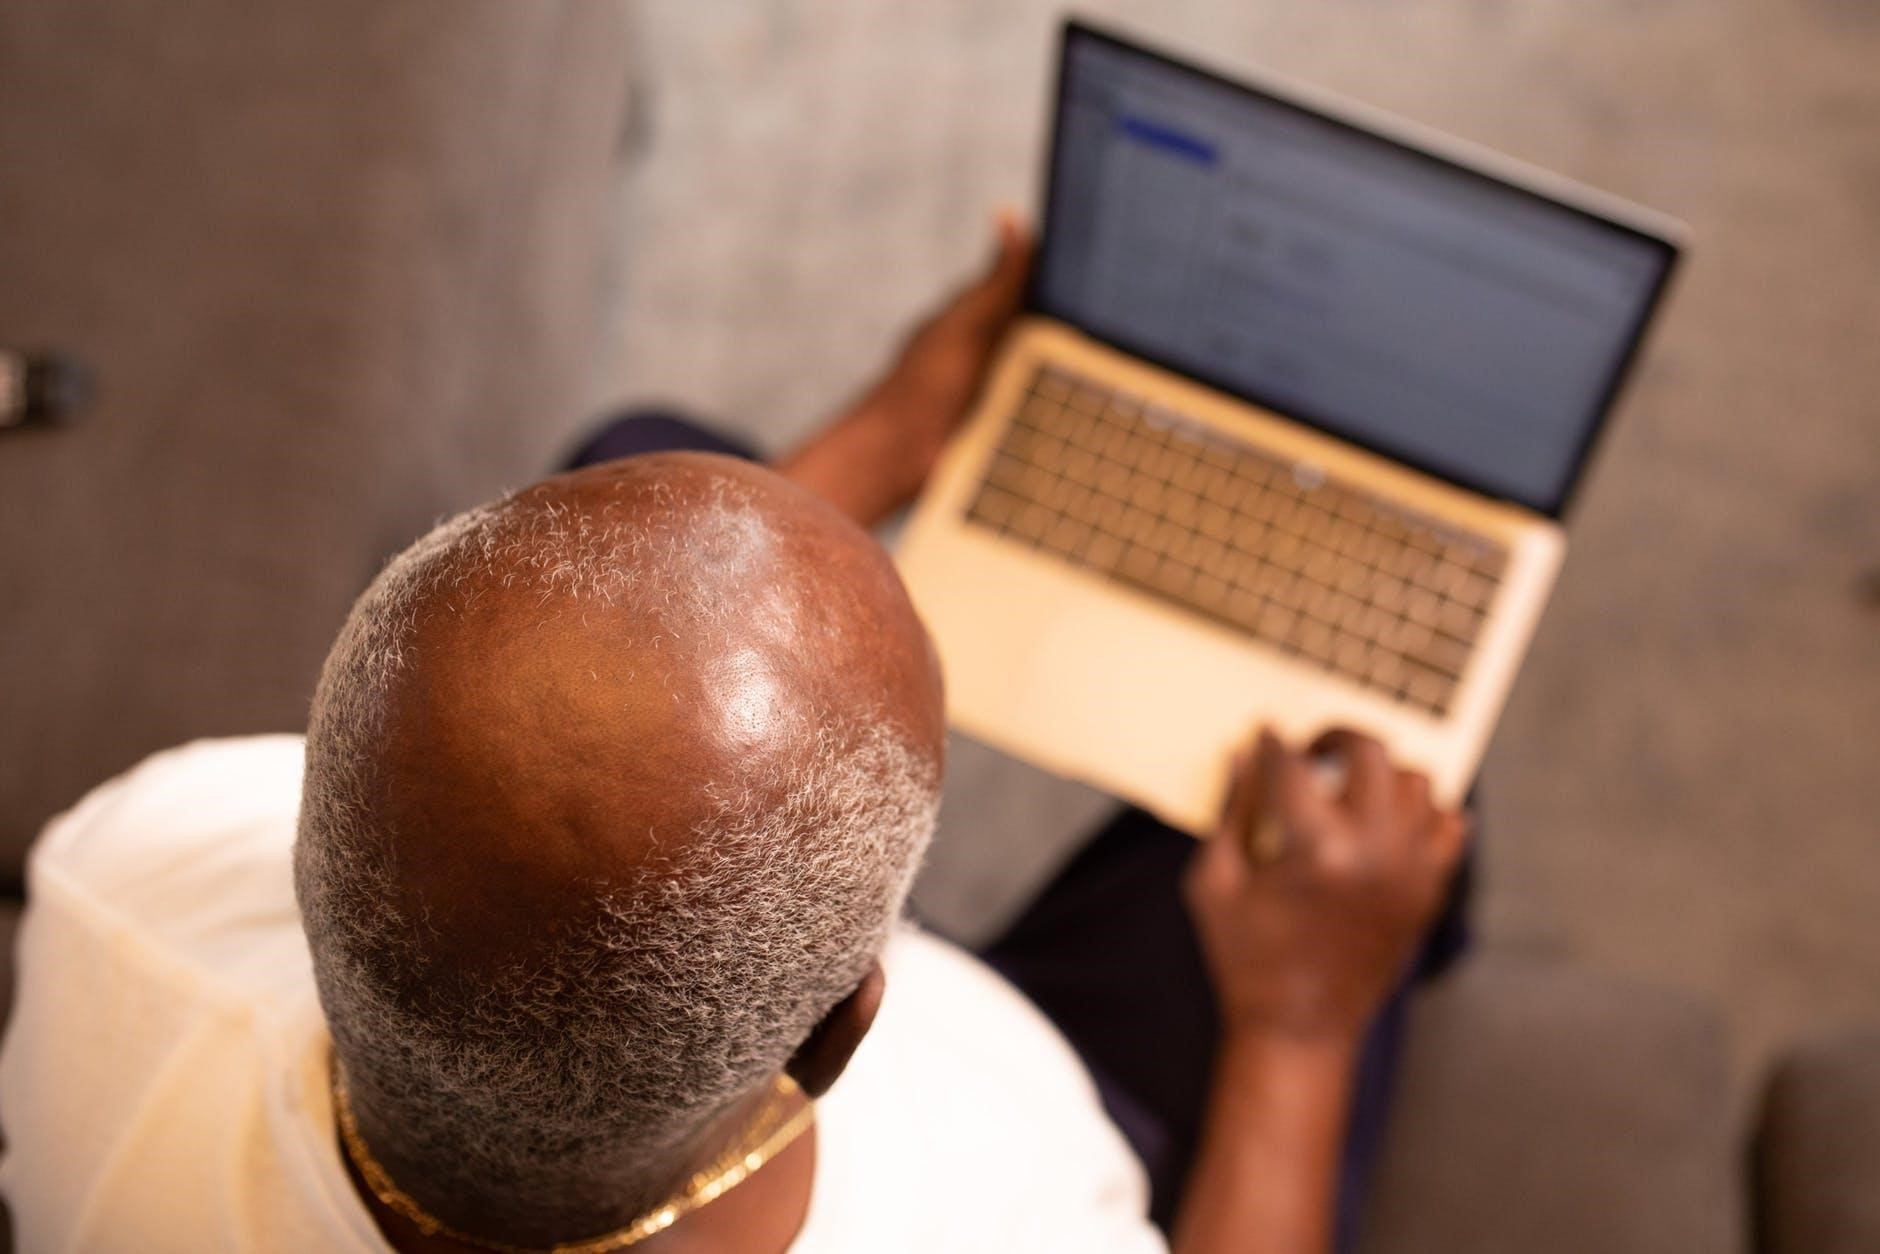 Bald man sitting in front a computer